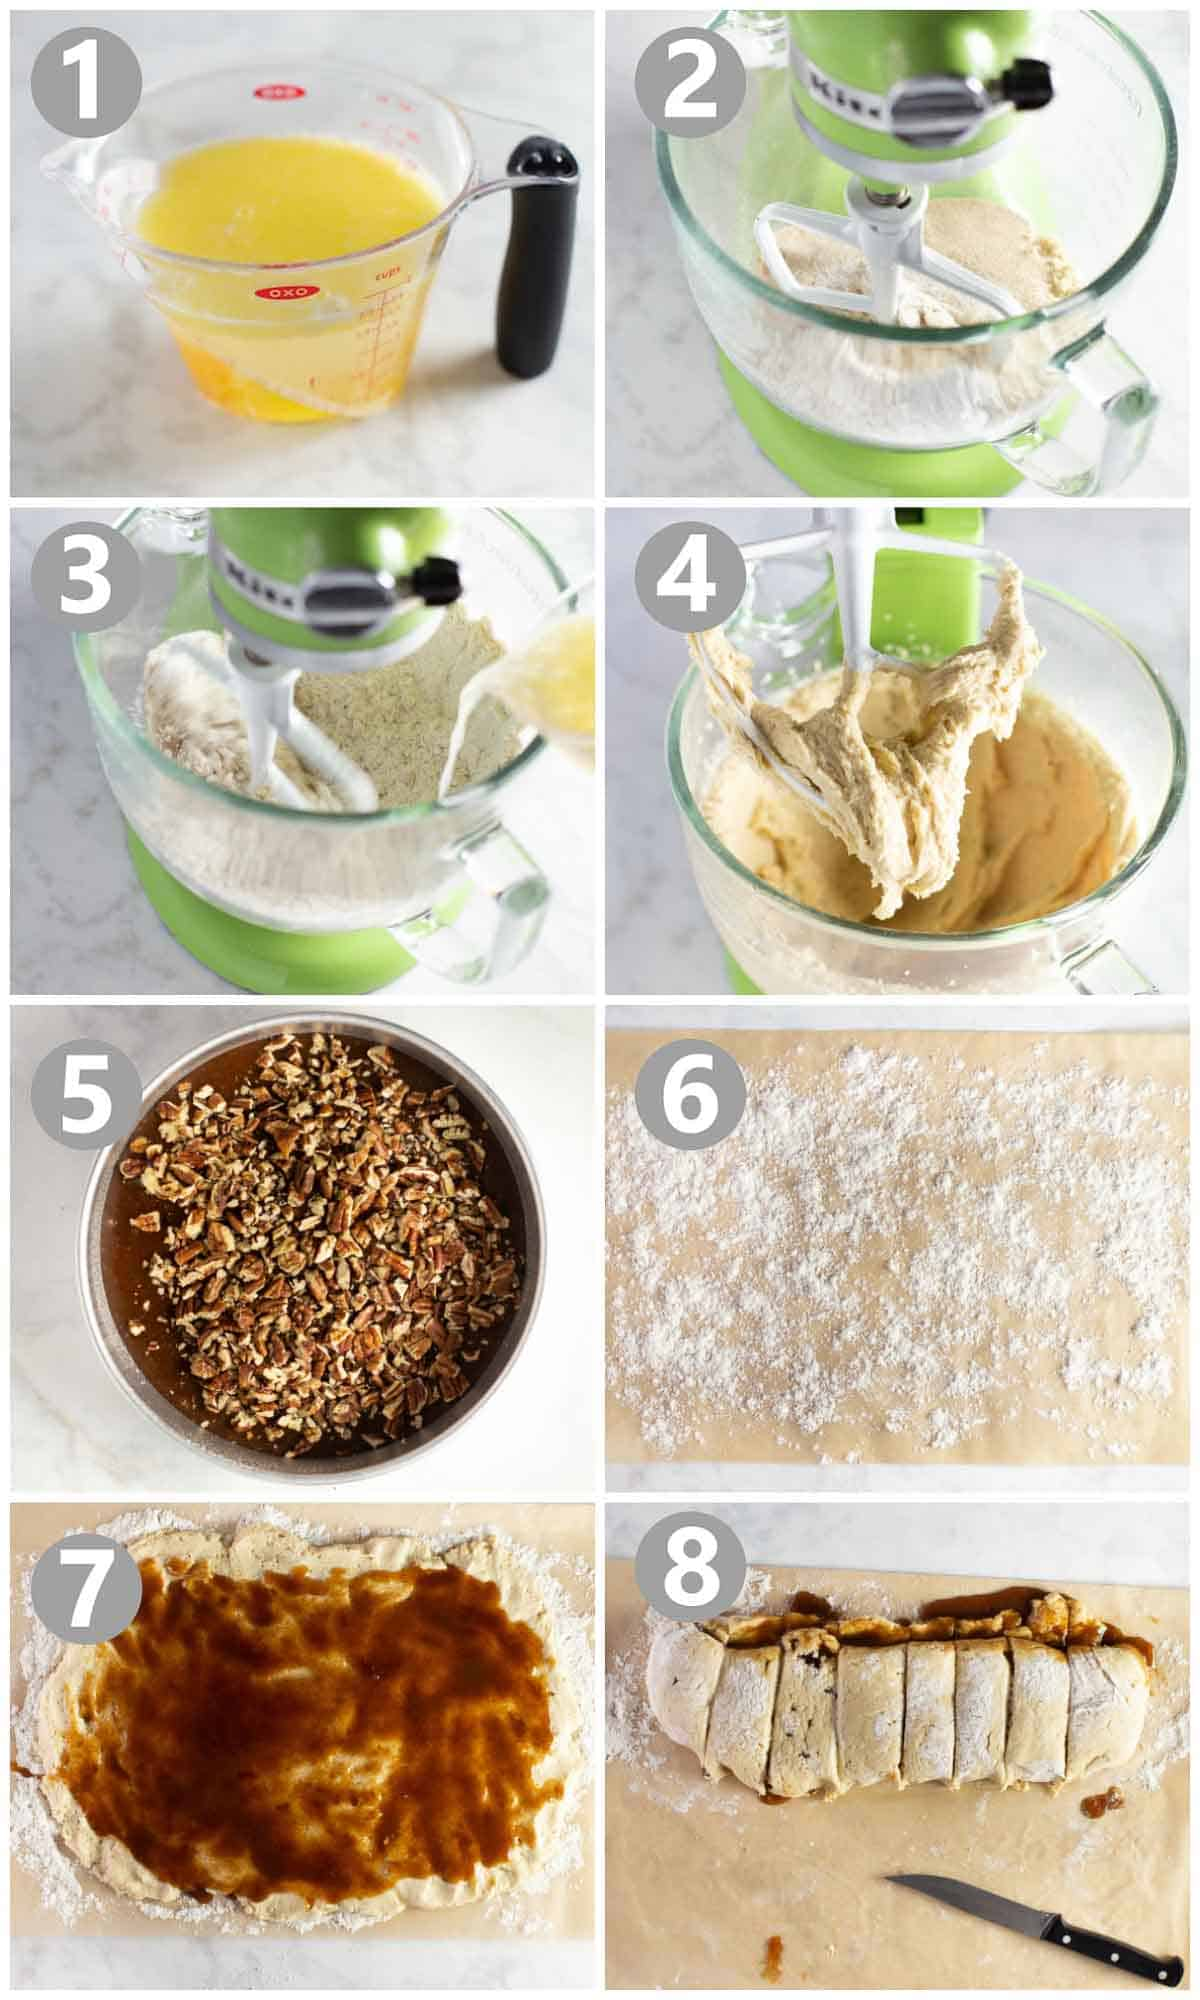 step by step pictures of how to make gluten-free sticky buns